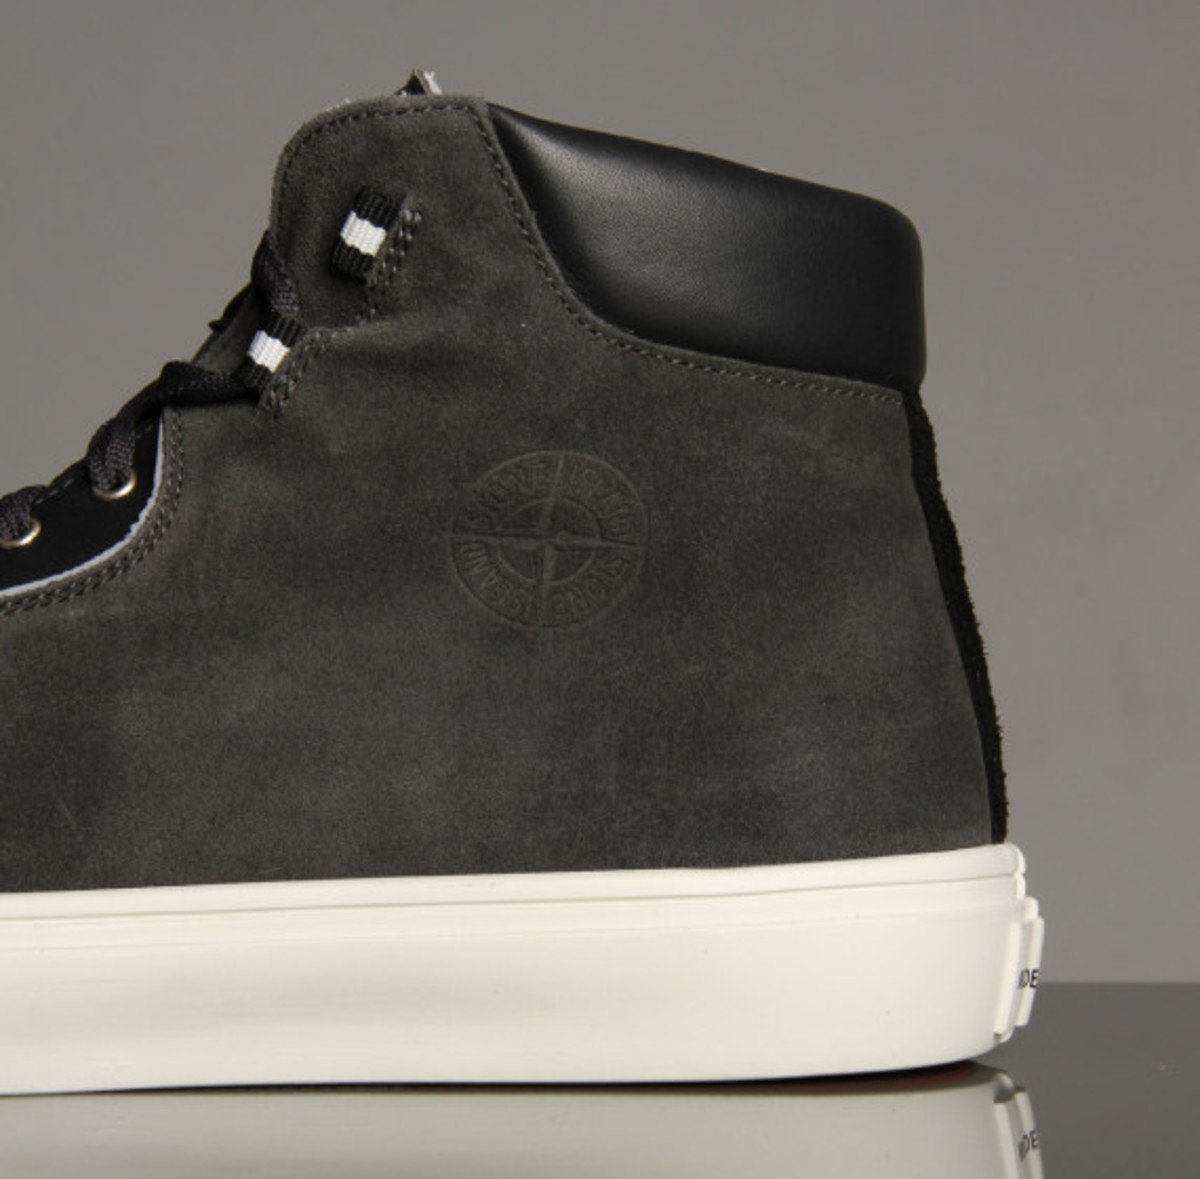 stone-island-diemme-high-top-sneakers-fall-winter-2014-g